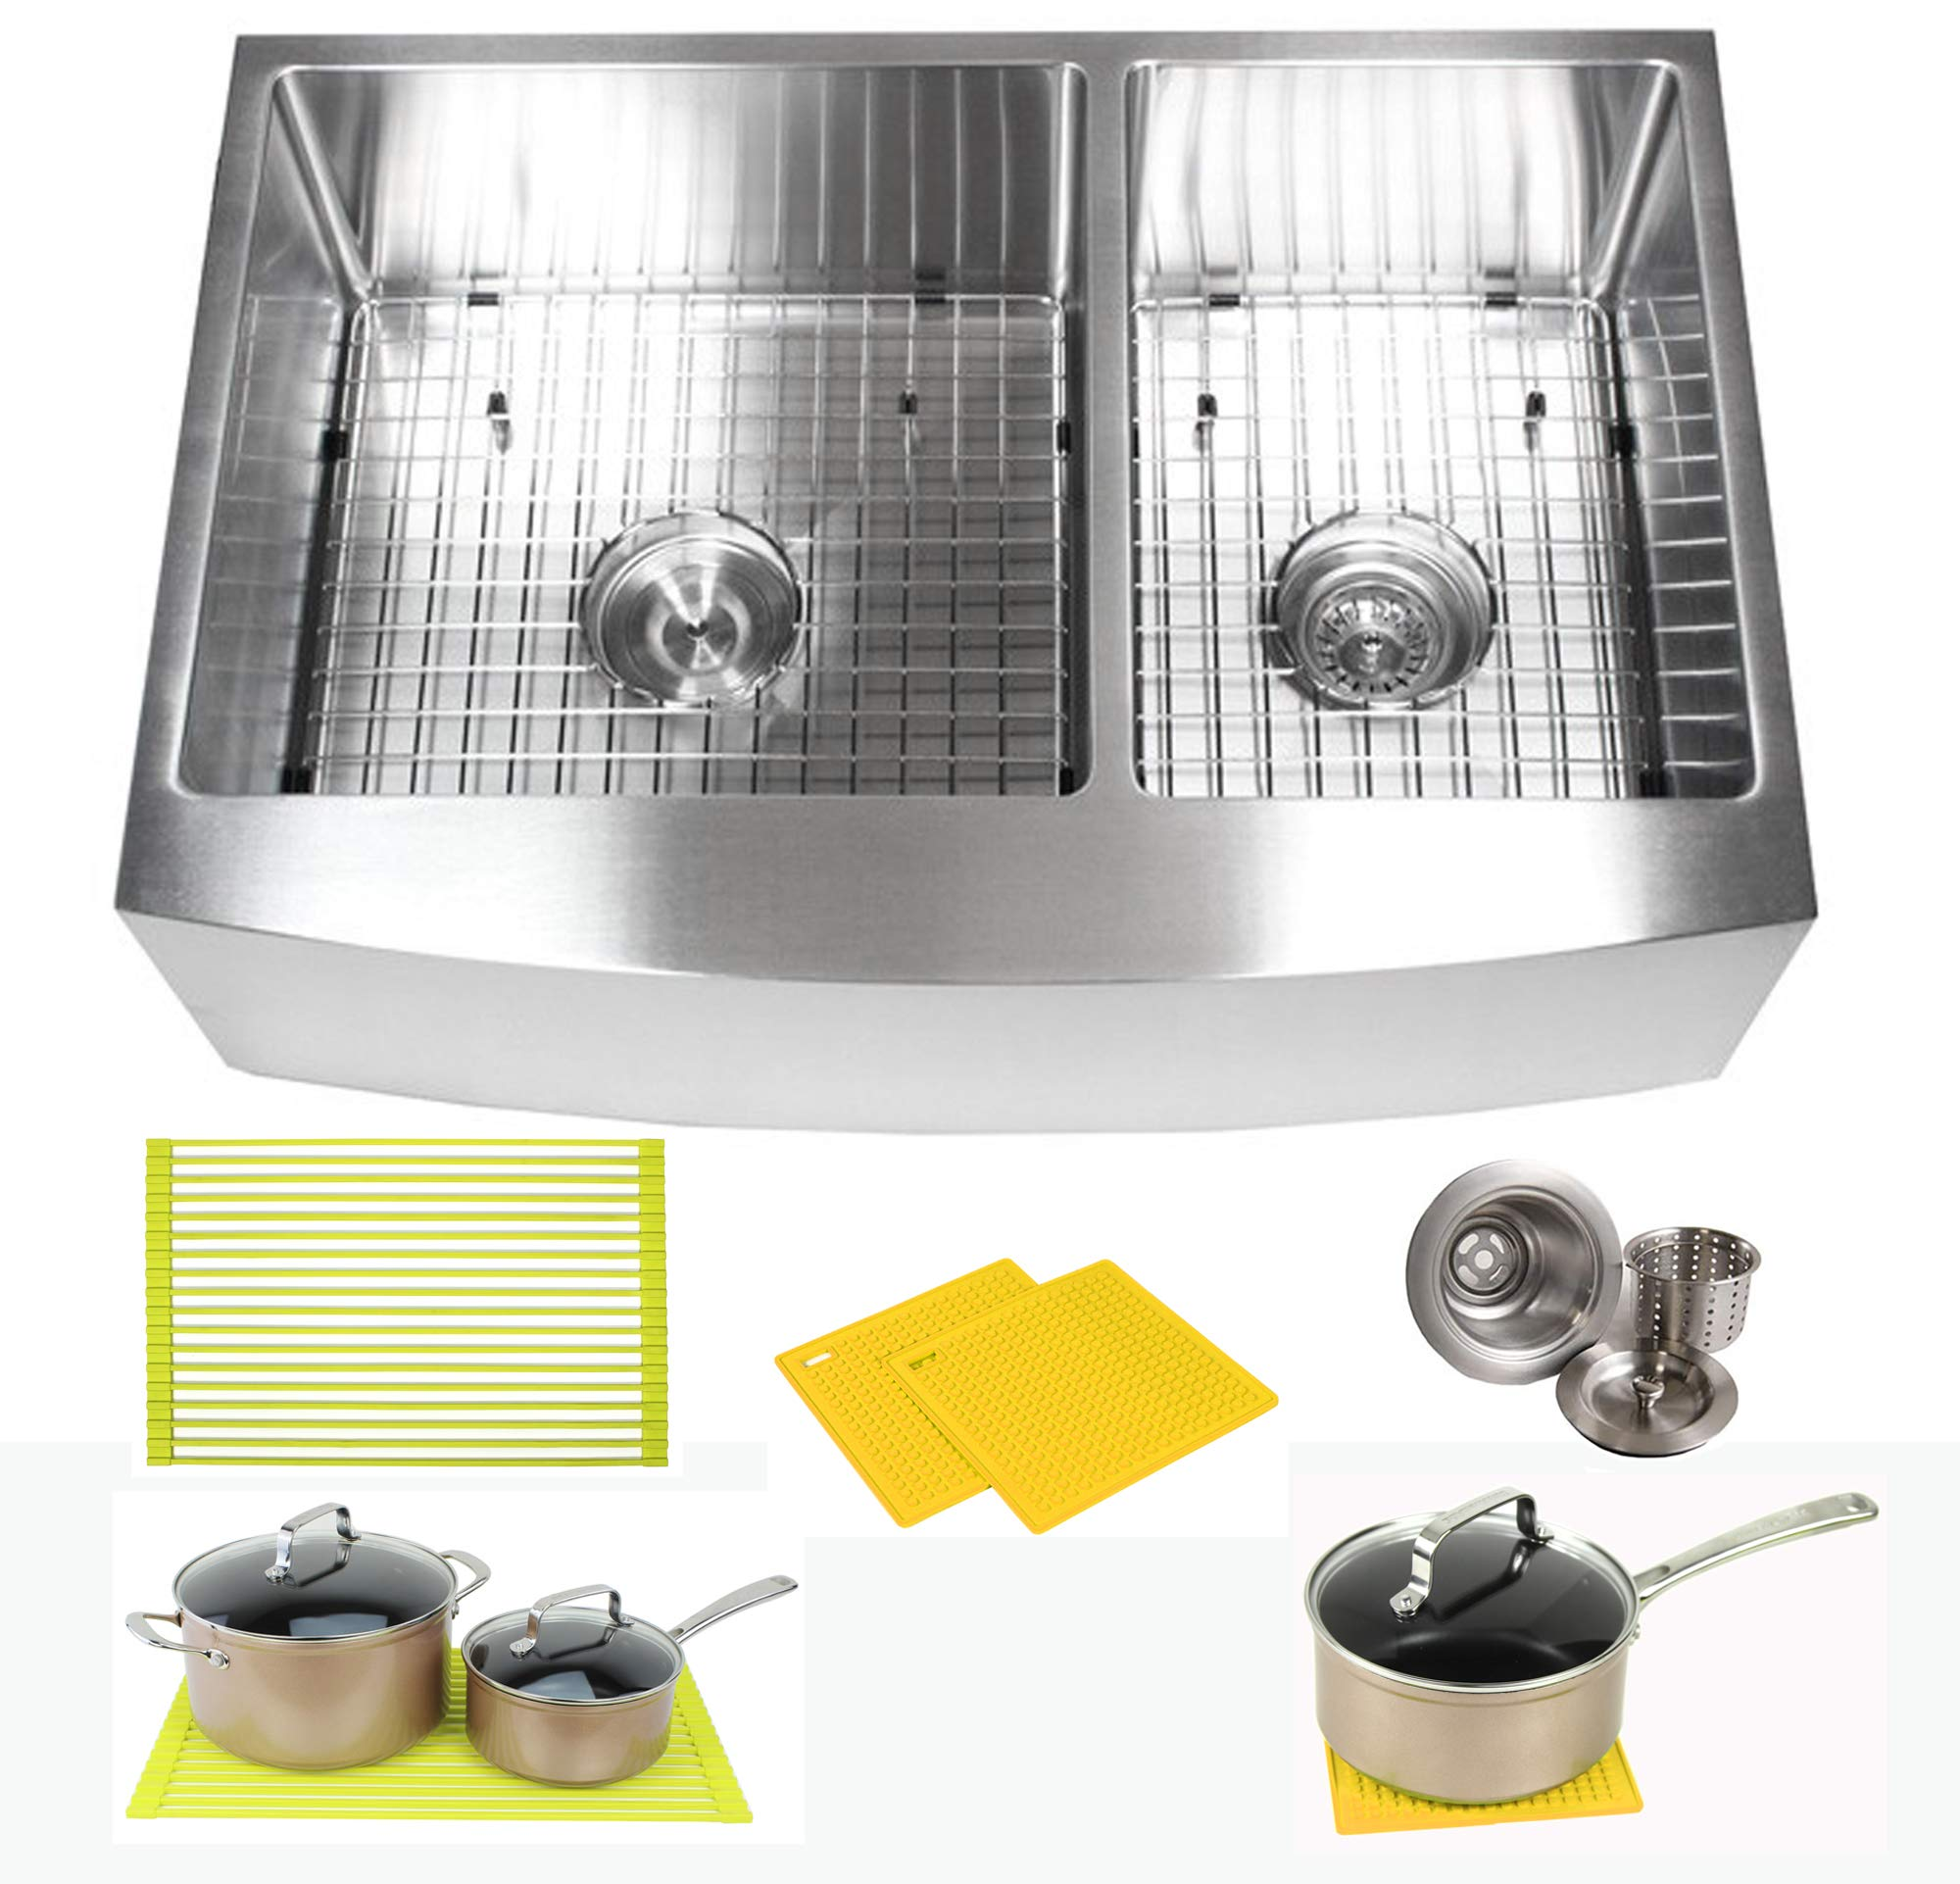 Premium 33 Inch Farmhouse Apron Front Stainless Steel Kitchen Sink Package - 16 Gauge Curved Front Double Bowl Basin - Complete Sink Pack + Bonus Kitchen Accessories